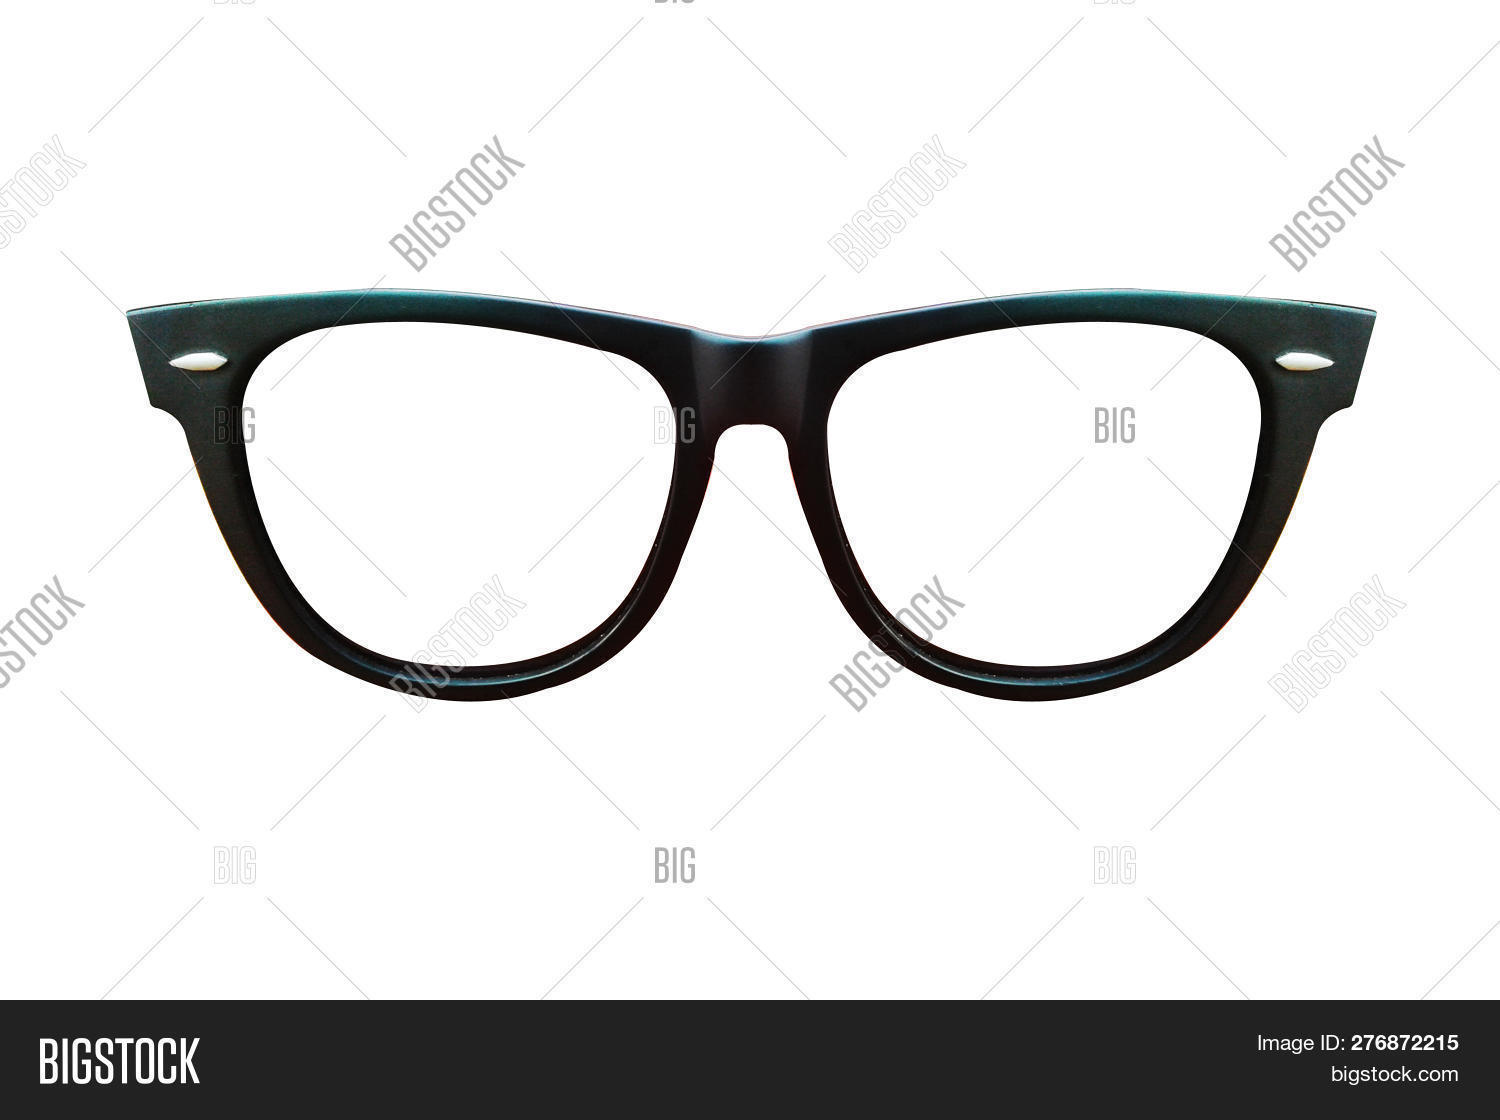 Glasses Spectacles Image Photo Free Trial Bigstock